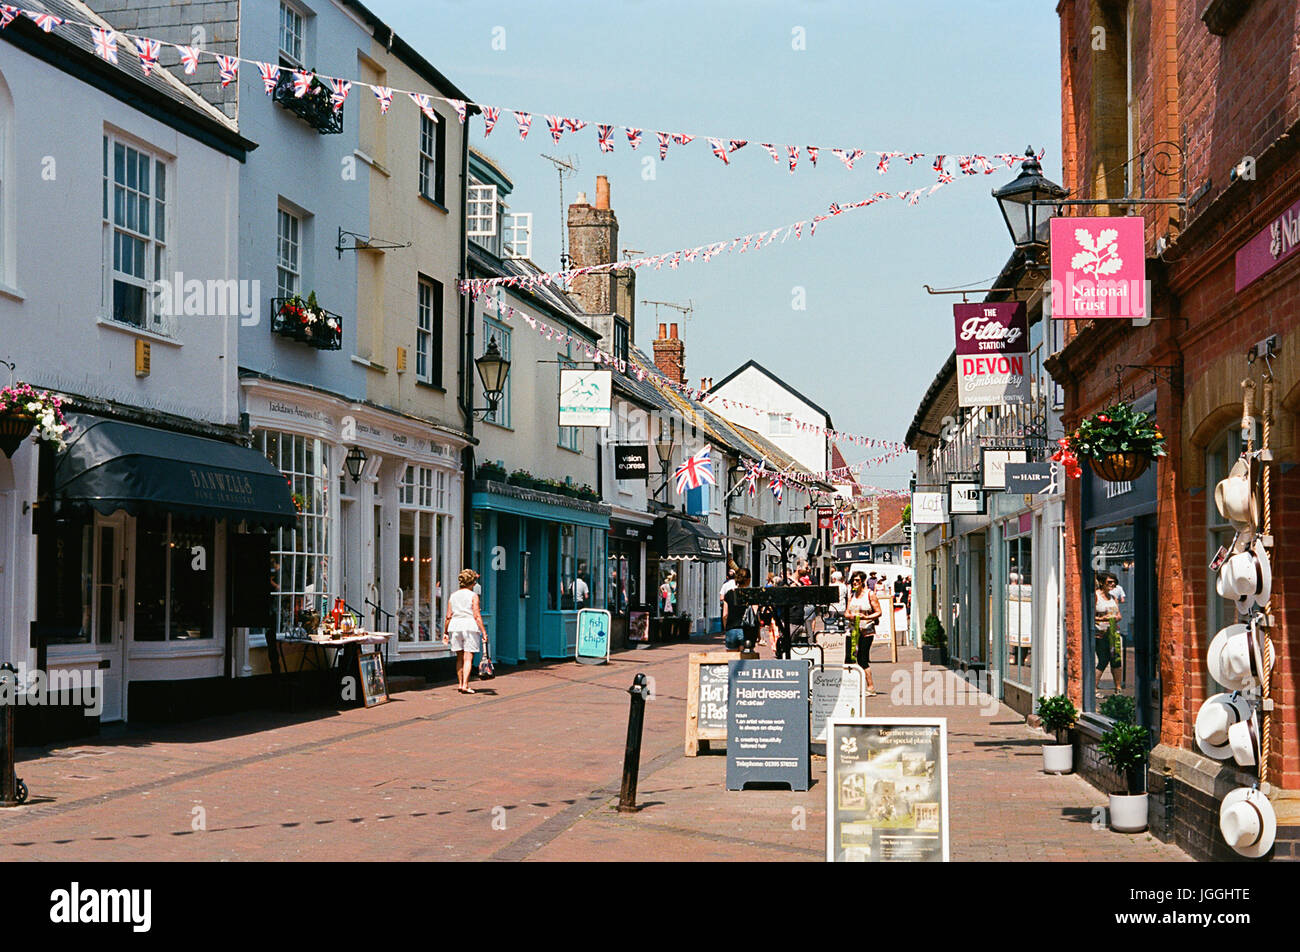 Old Fore Street in Sidmouth town centre, East Devon, UK - Stock Image